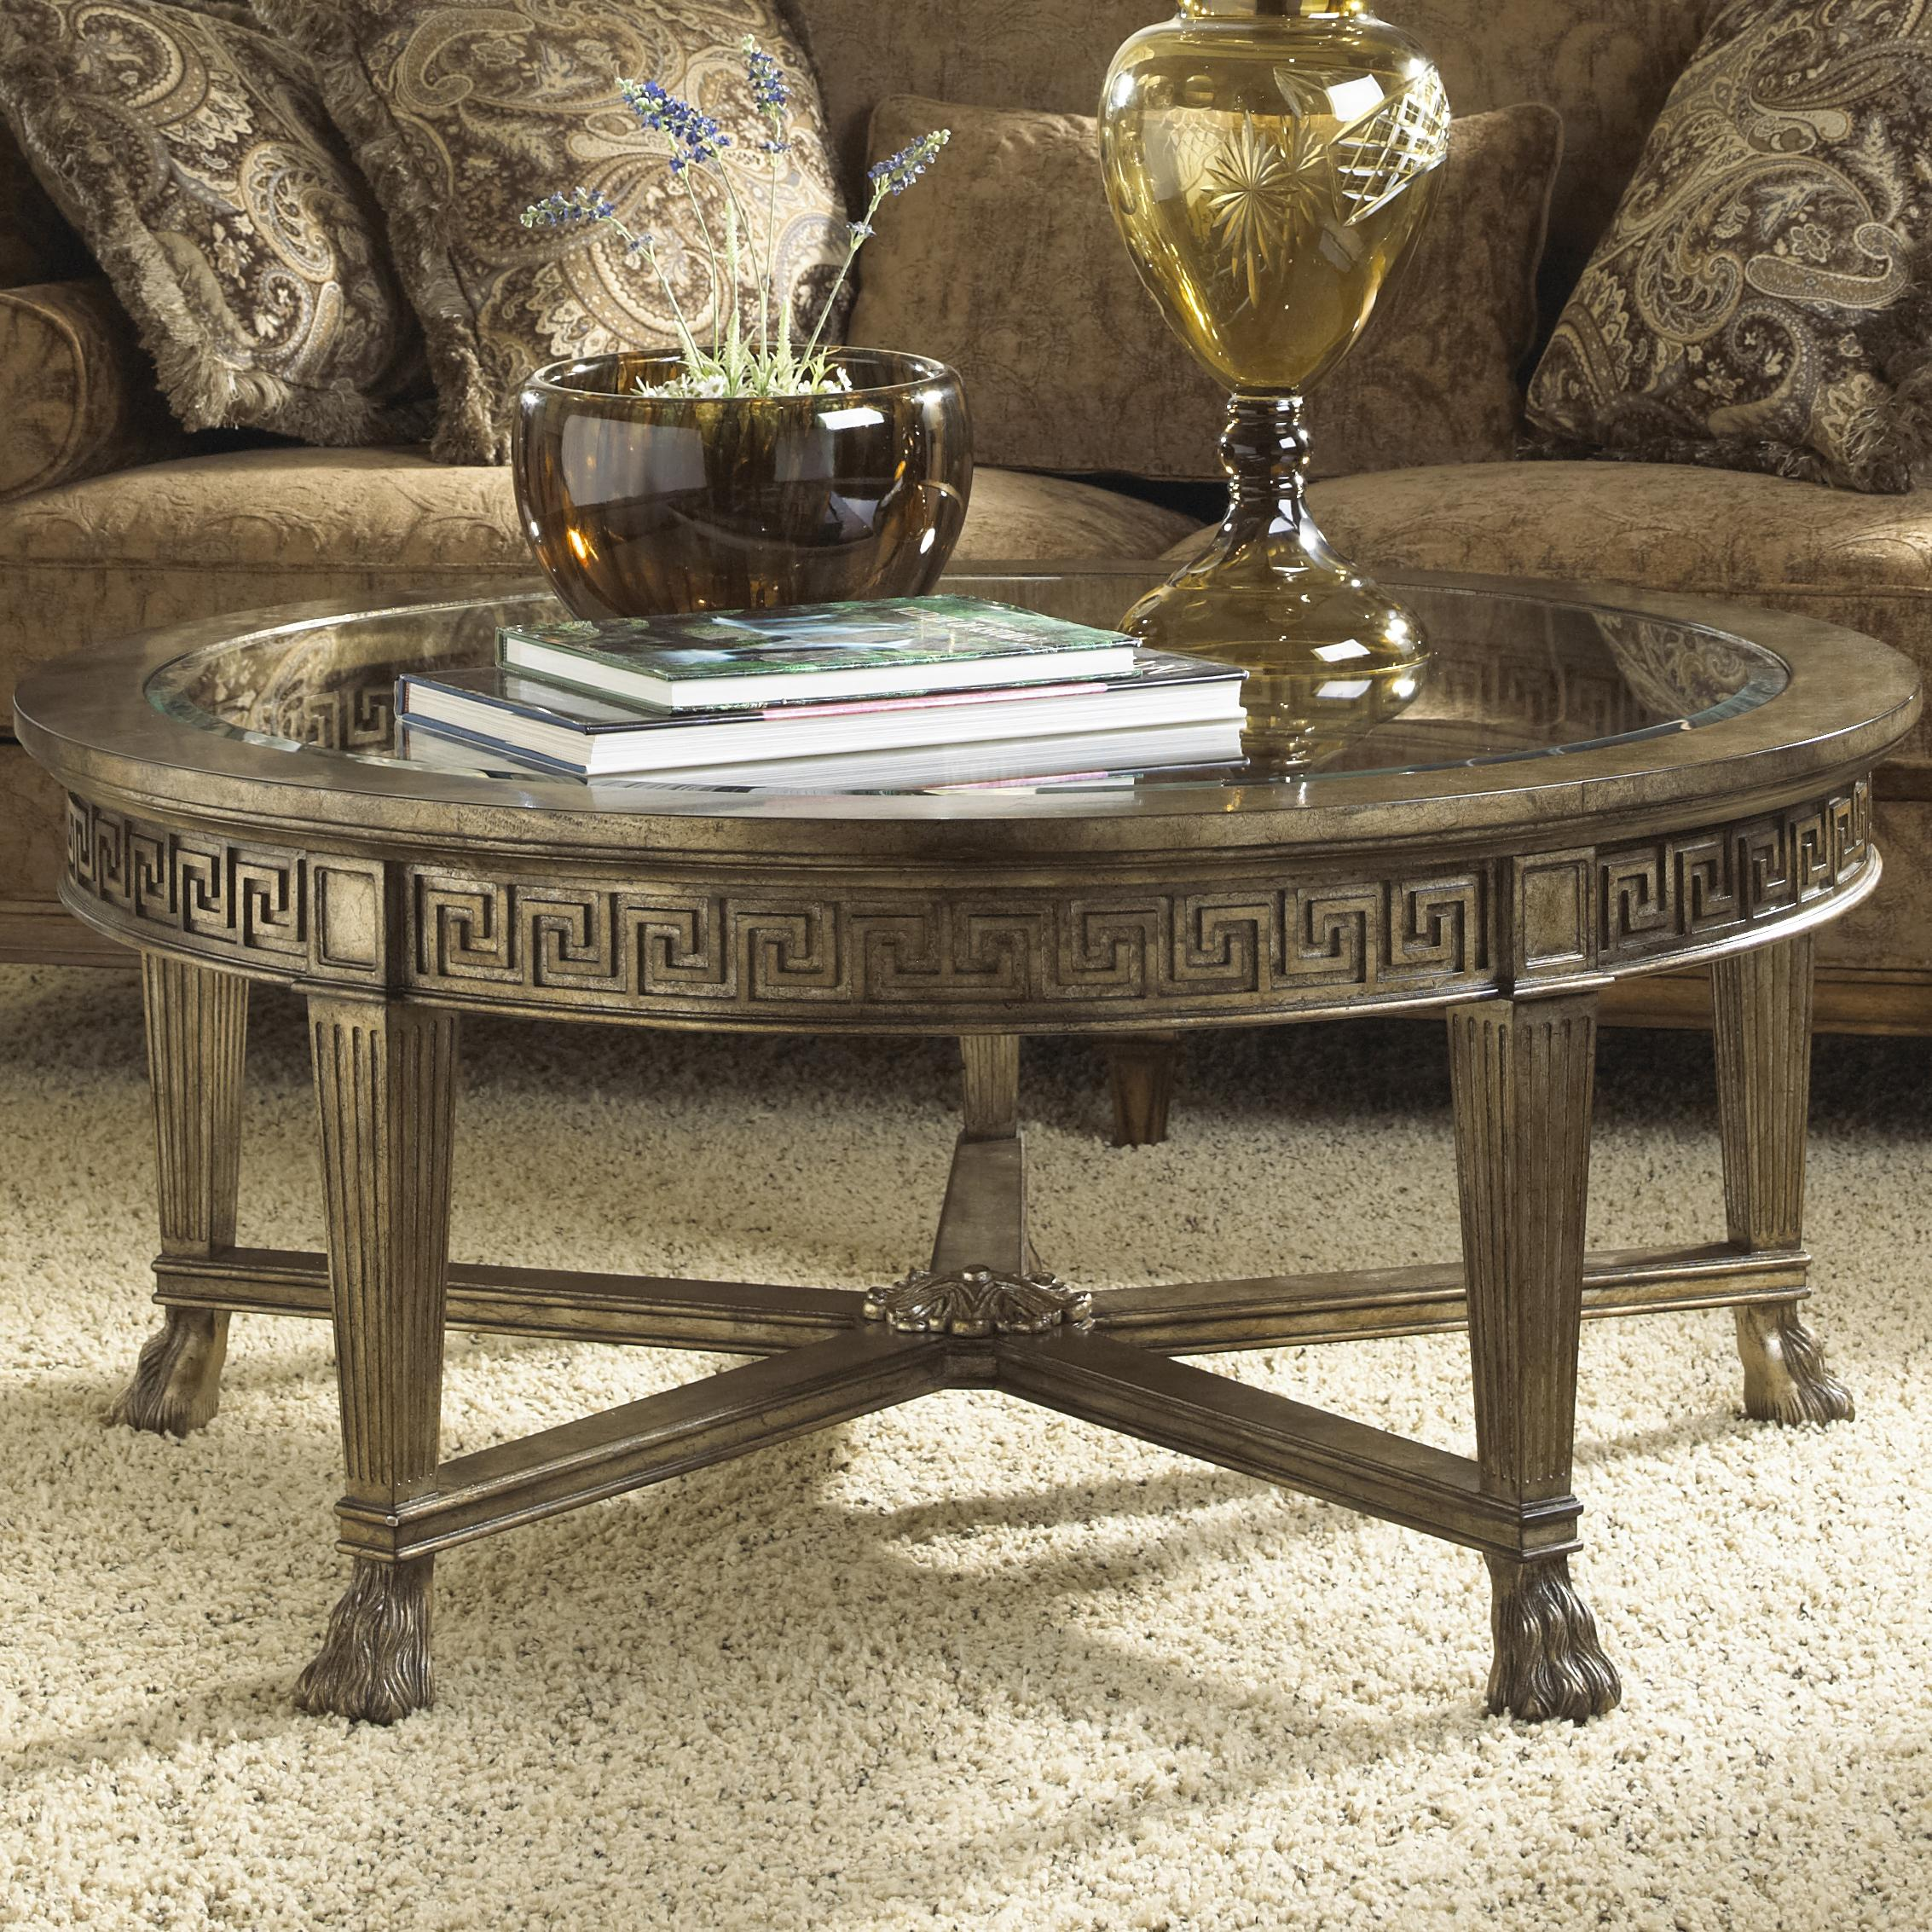 Grecian Style Round Coffee Table with Glass Top by Fine Furniture